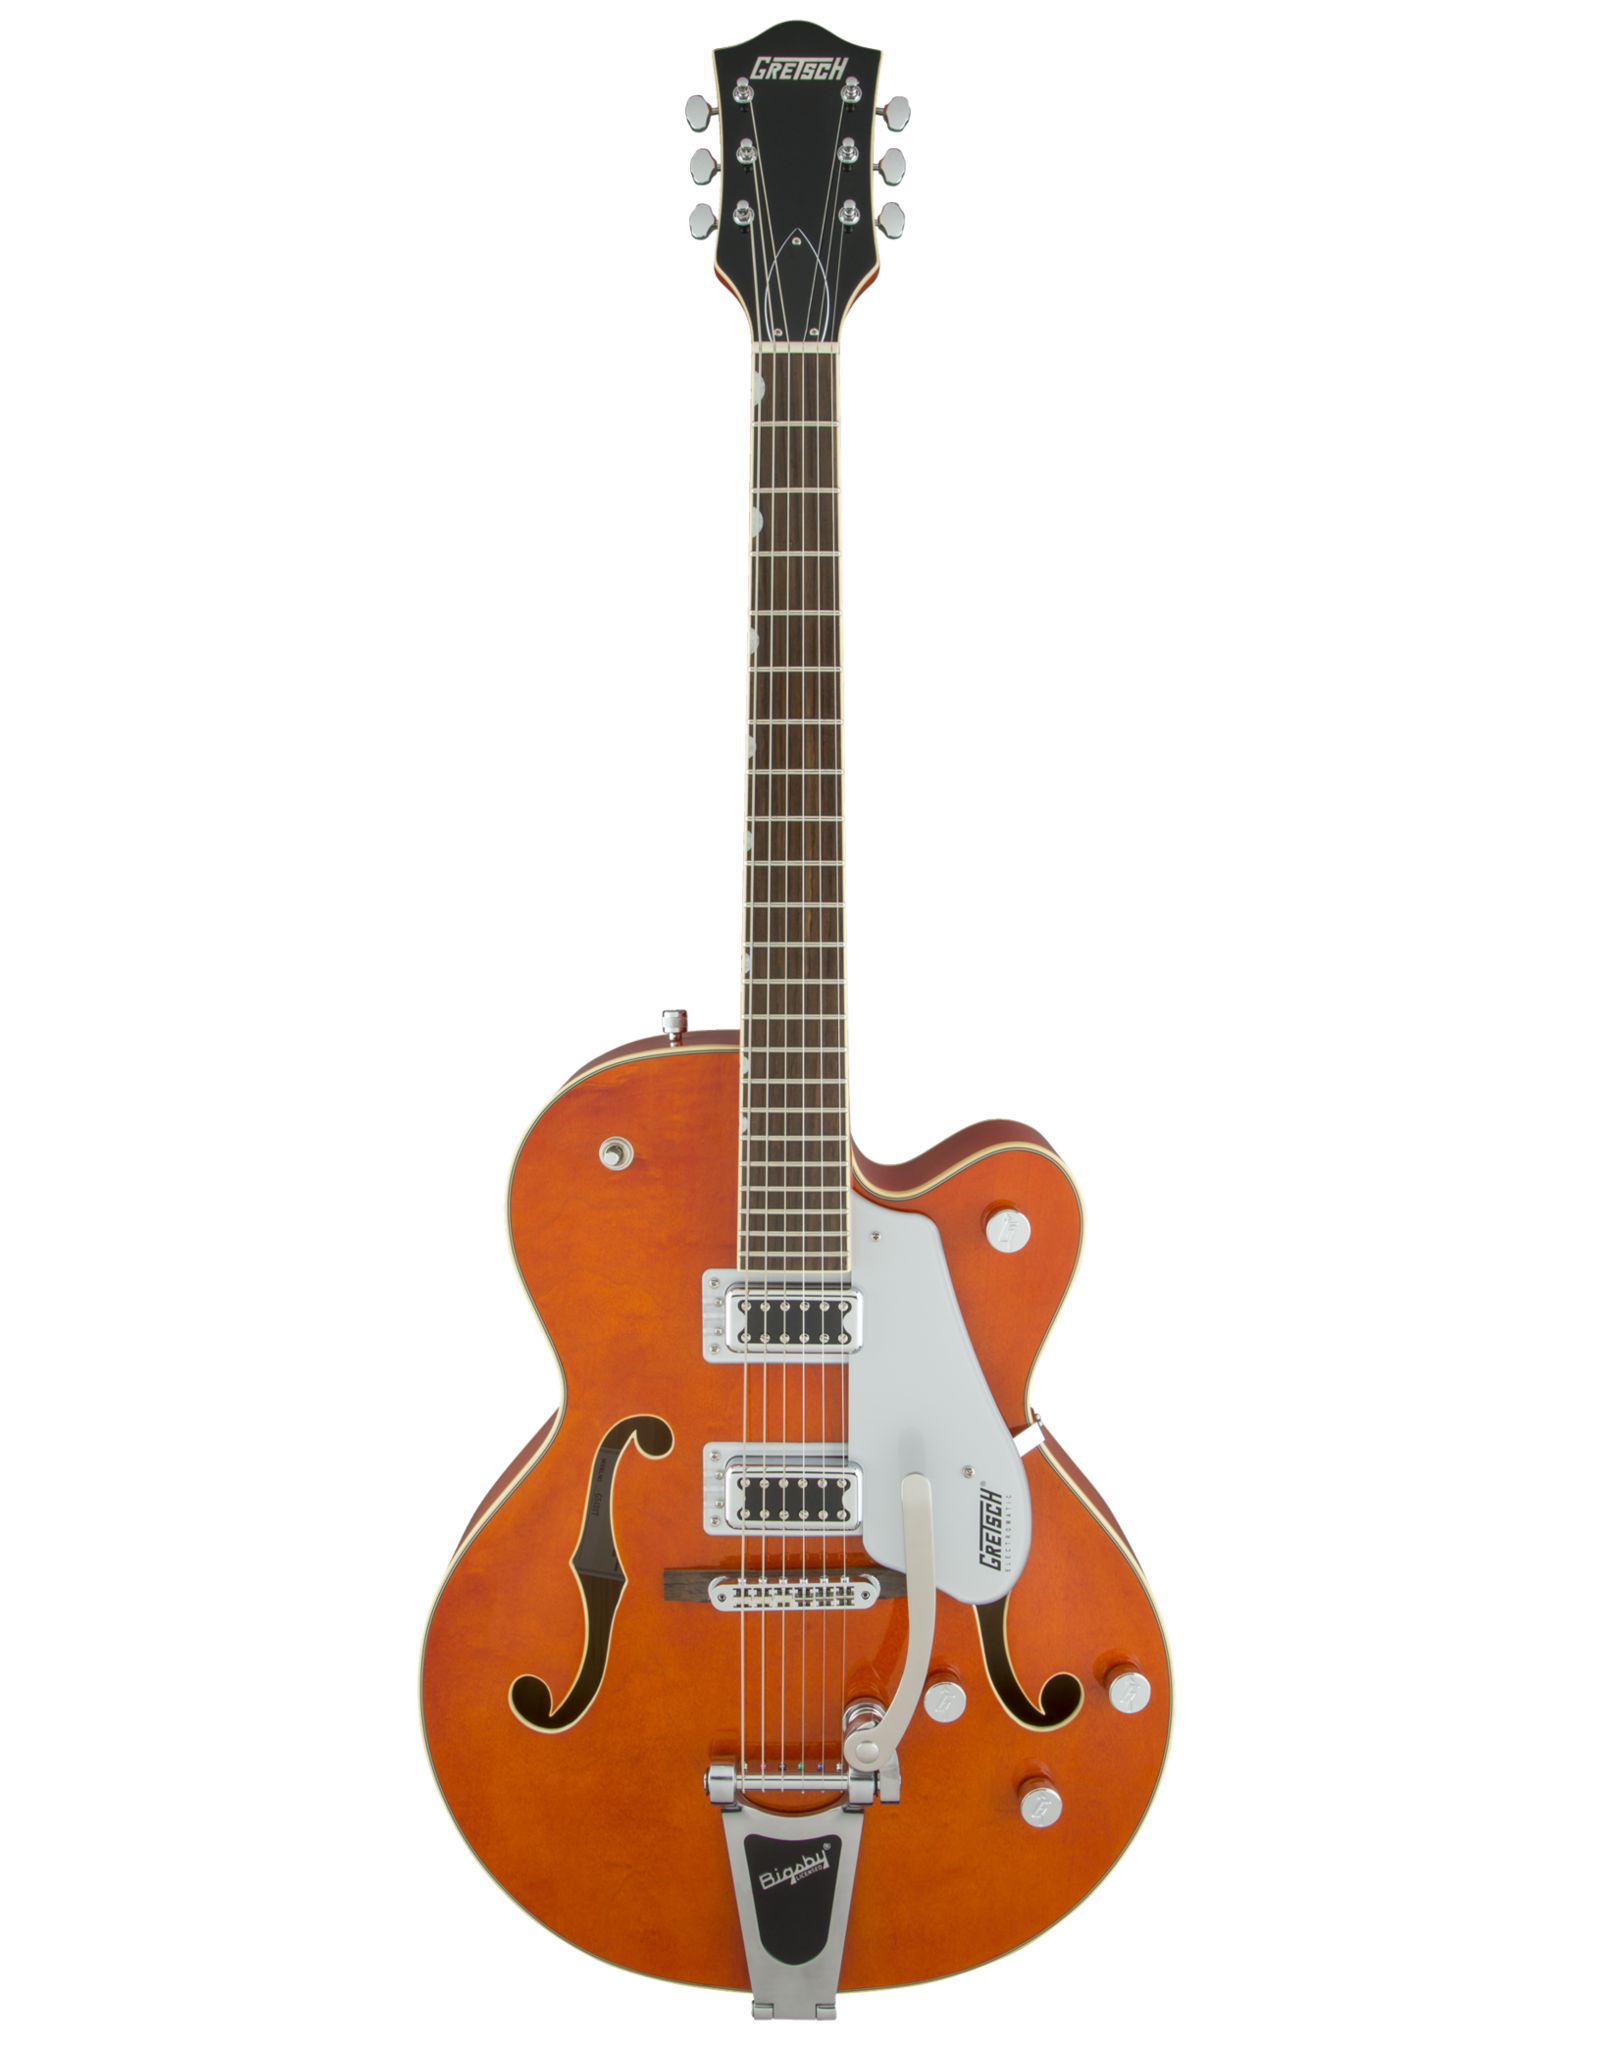 Gretsch Gretsch G5420T Electromatic Hollow Body Single-Cut with Bigsby, Orange Stain, Used